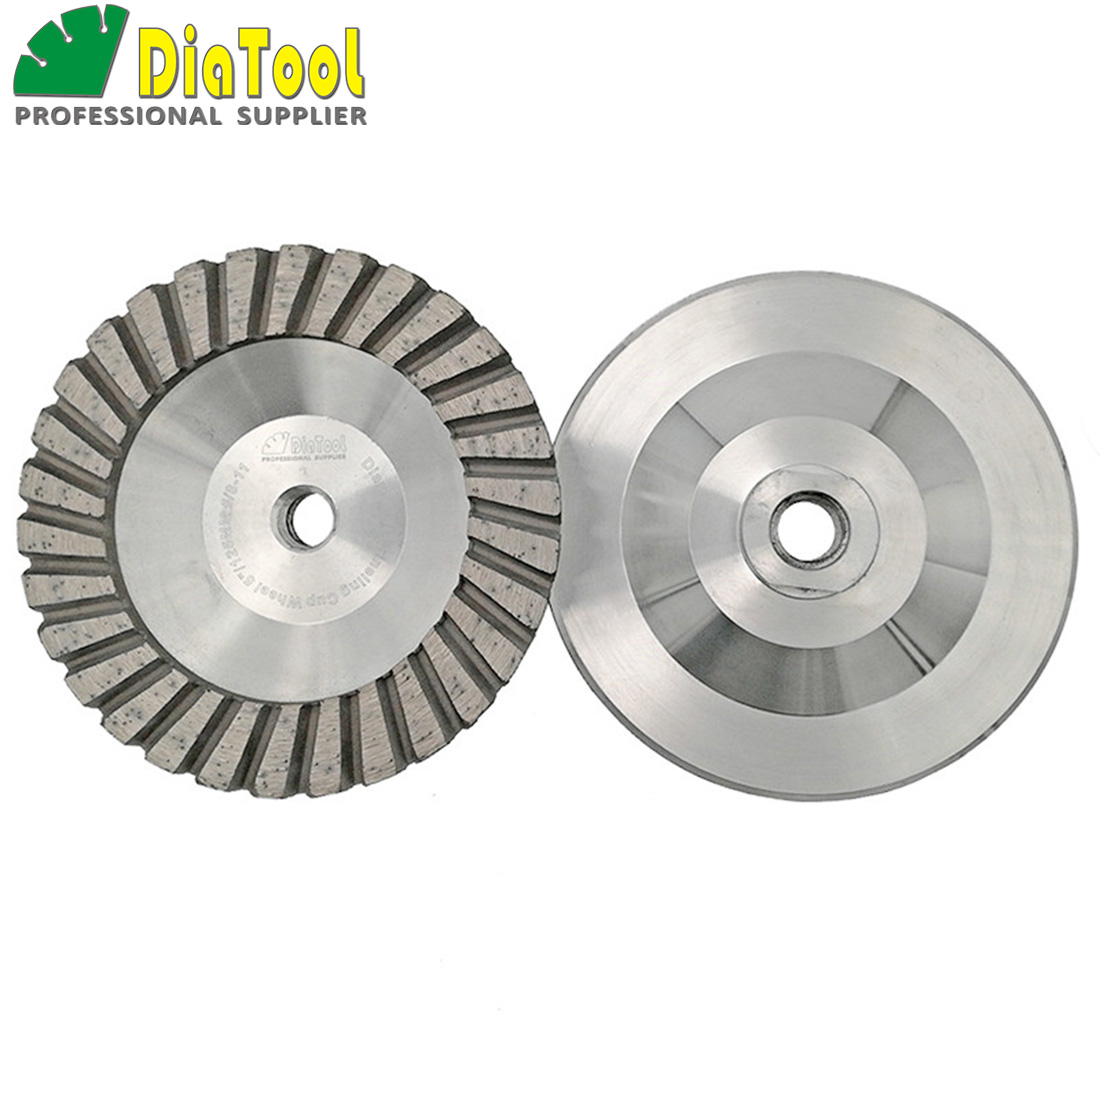 DIATOOL 2PK Dia 125mm/5inch Aluminum Based Diamond Grinding Cup Wheel 5/8-11 thread Grit #30 Grinding Wheel For Granite Concrete цена